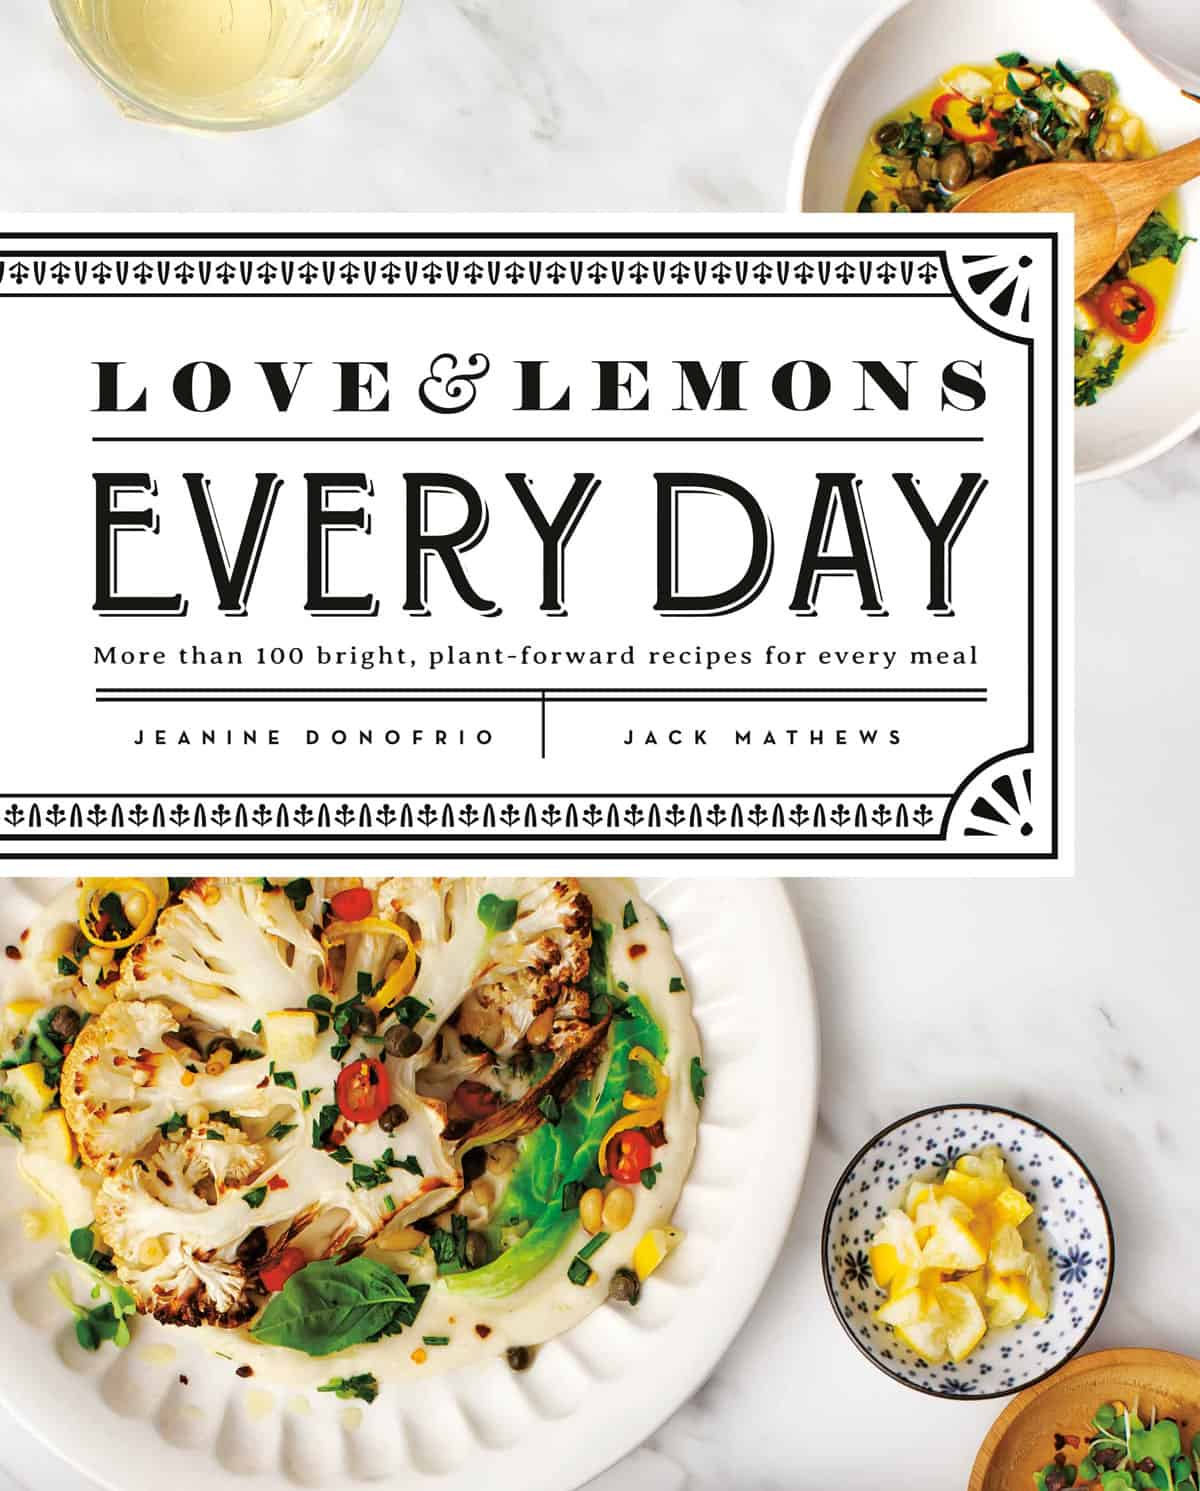 Love & Lemons Every Day cookbook cover.